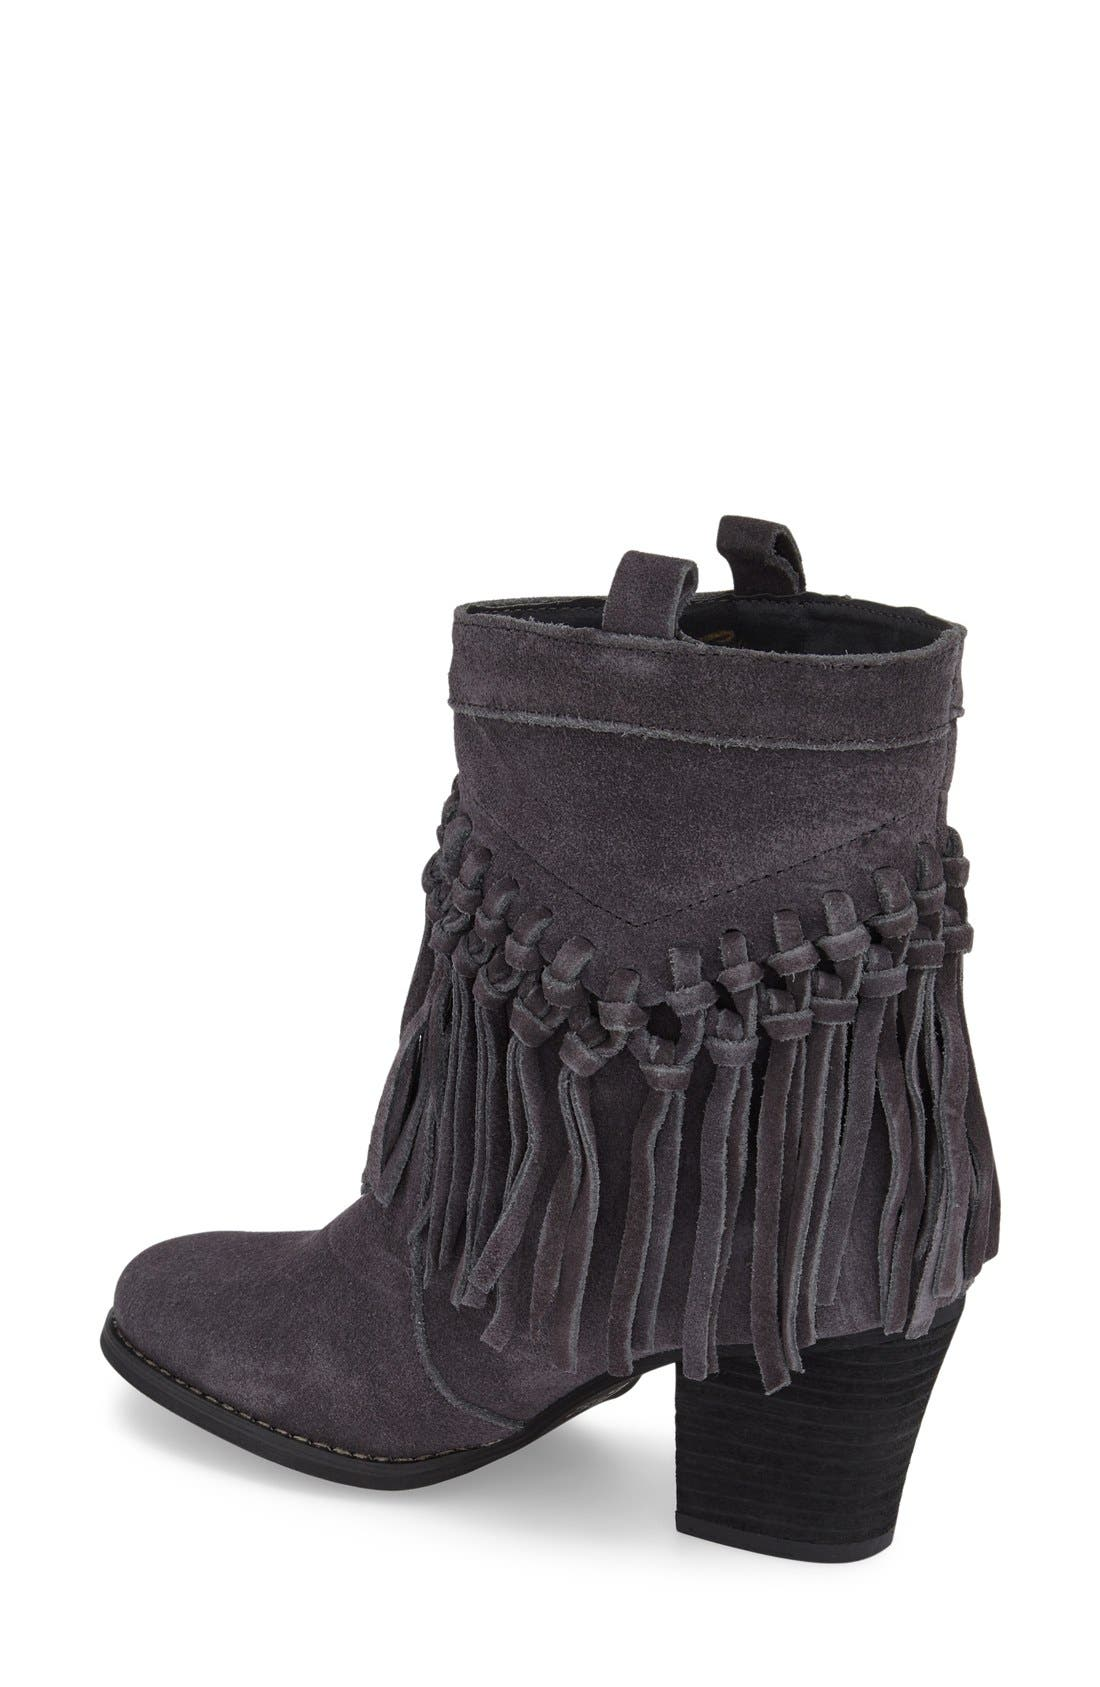 Alternate Image 2  - Sbicca 'Sound' Fringe Suede Bootie (Women)